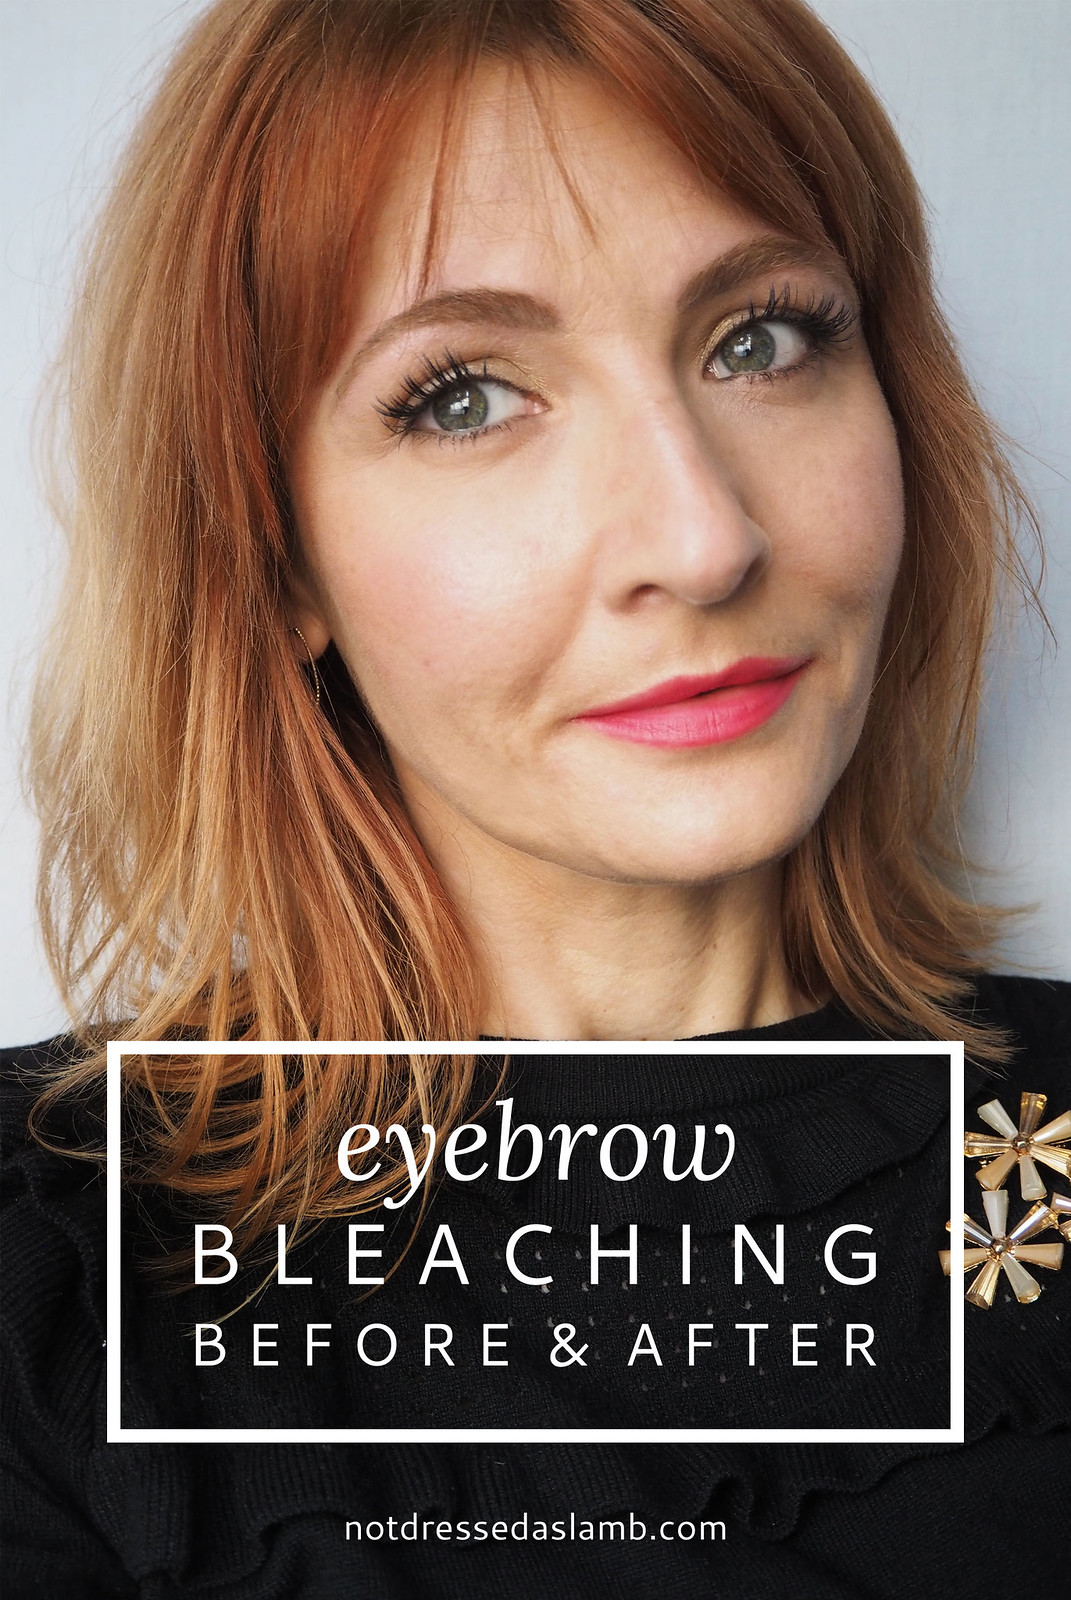 Bleaching eyebrows to match bed or blonde hair - before and after results | Not Dressed As Lamb, over 40 style blog